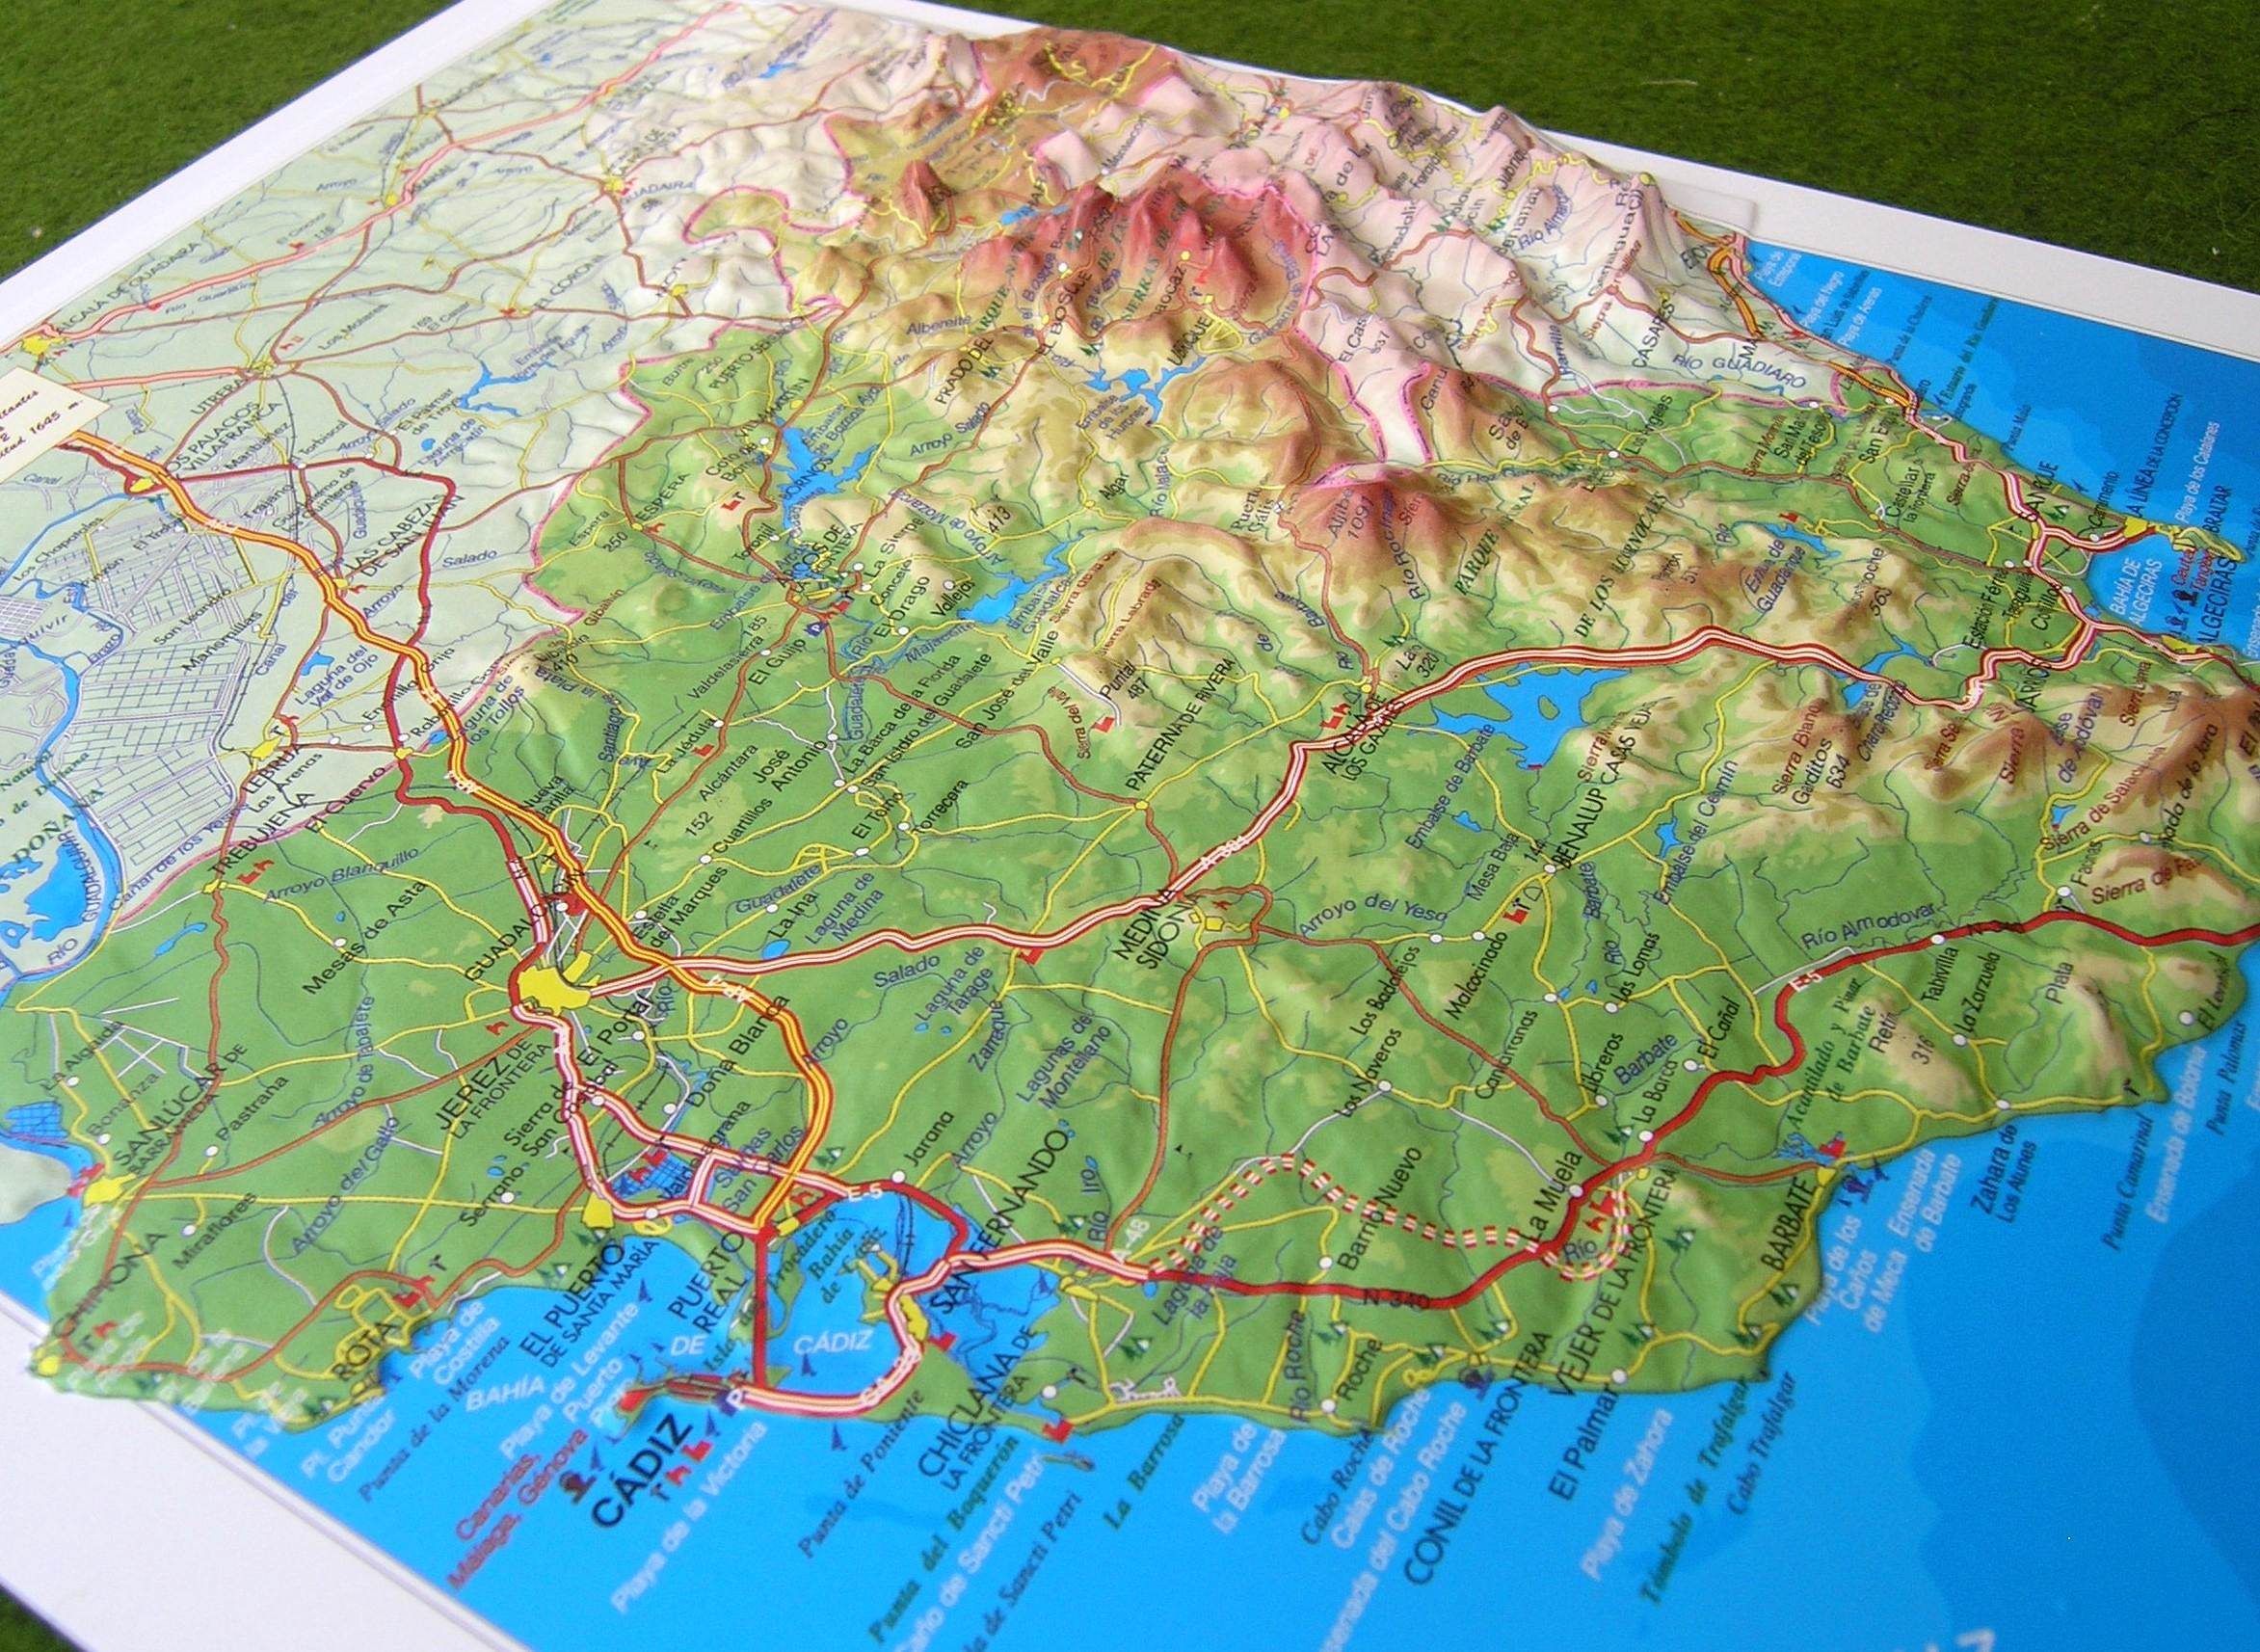 Map South Of Spain.Raised Relief Map Of Cadiz South Spain As 3d Map